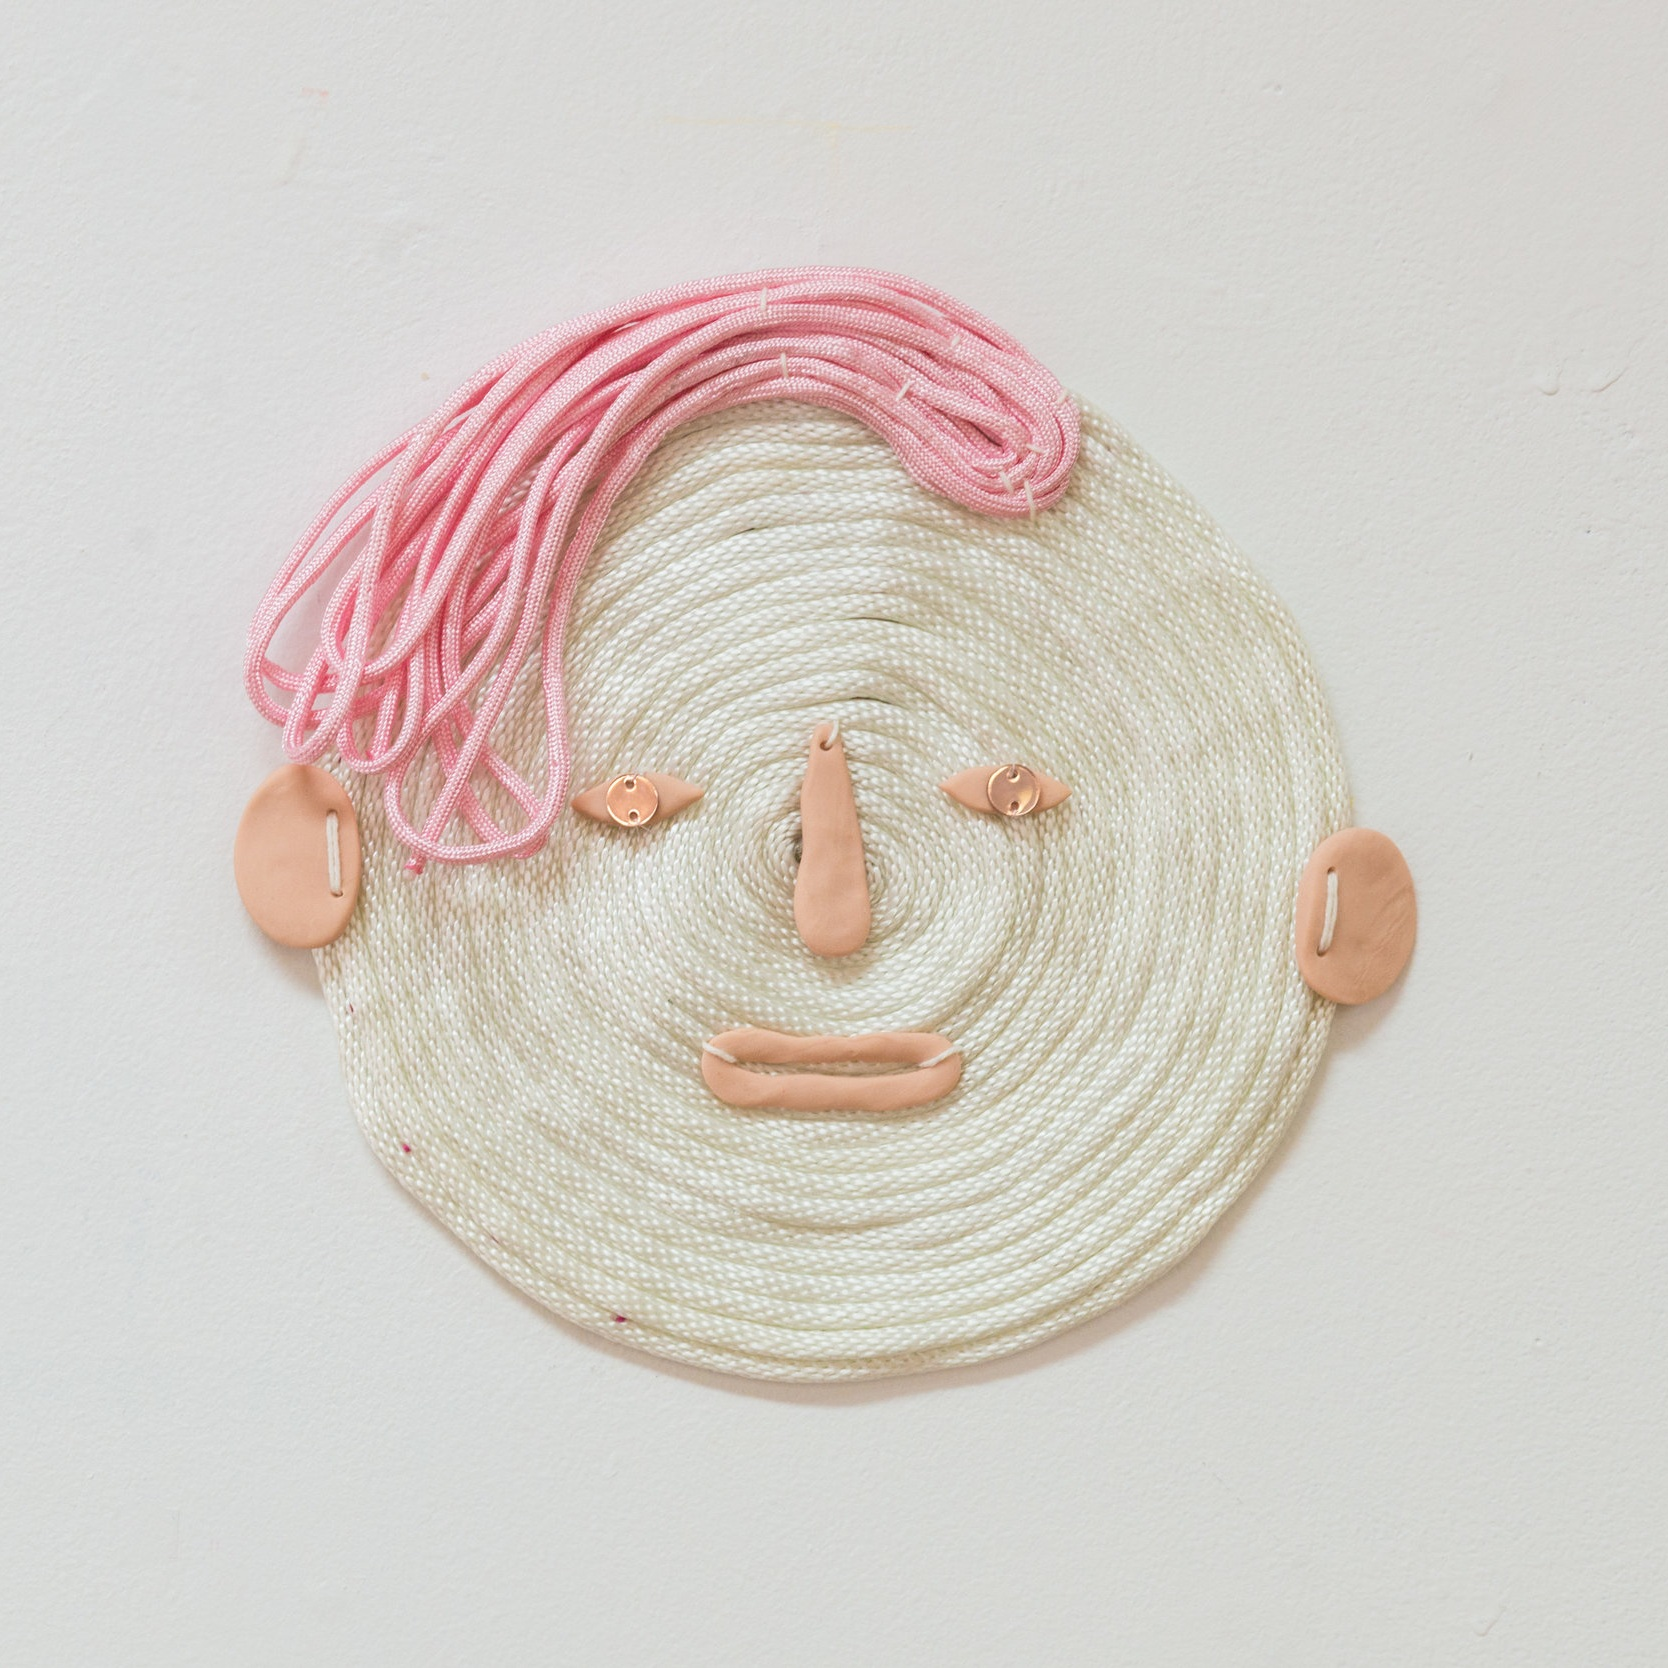 Aaron (haunted by) , 2019 Bondage rope, paracord, polymer clay and laser cut acrylic.